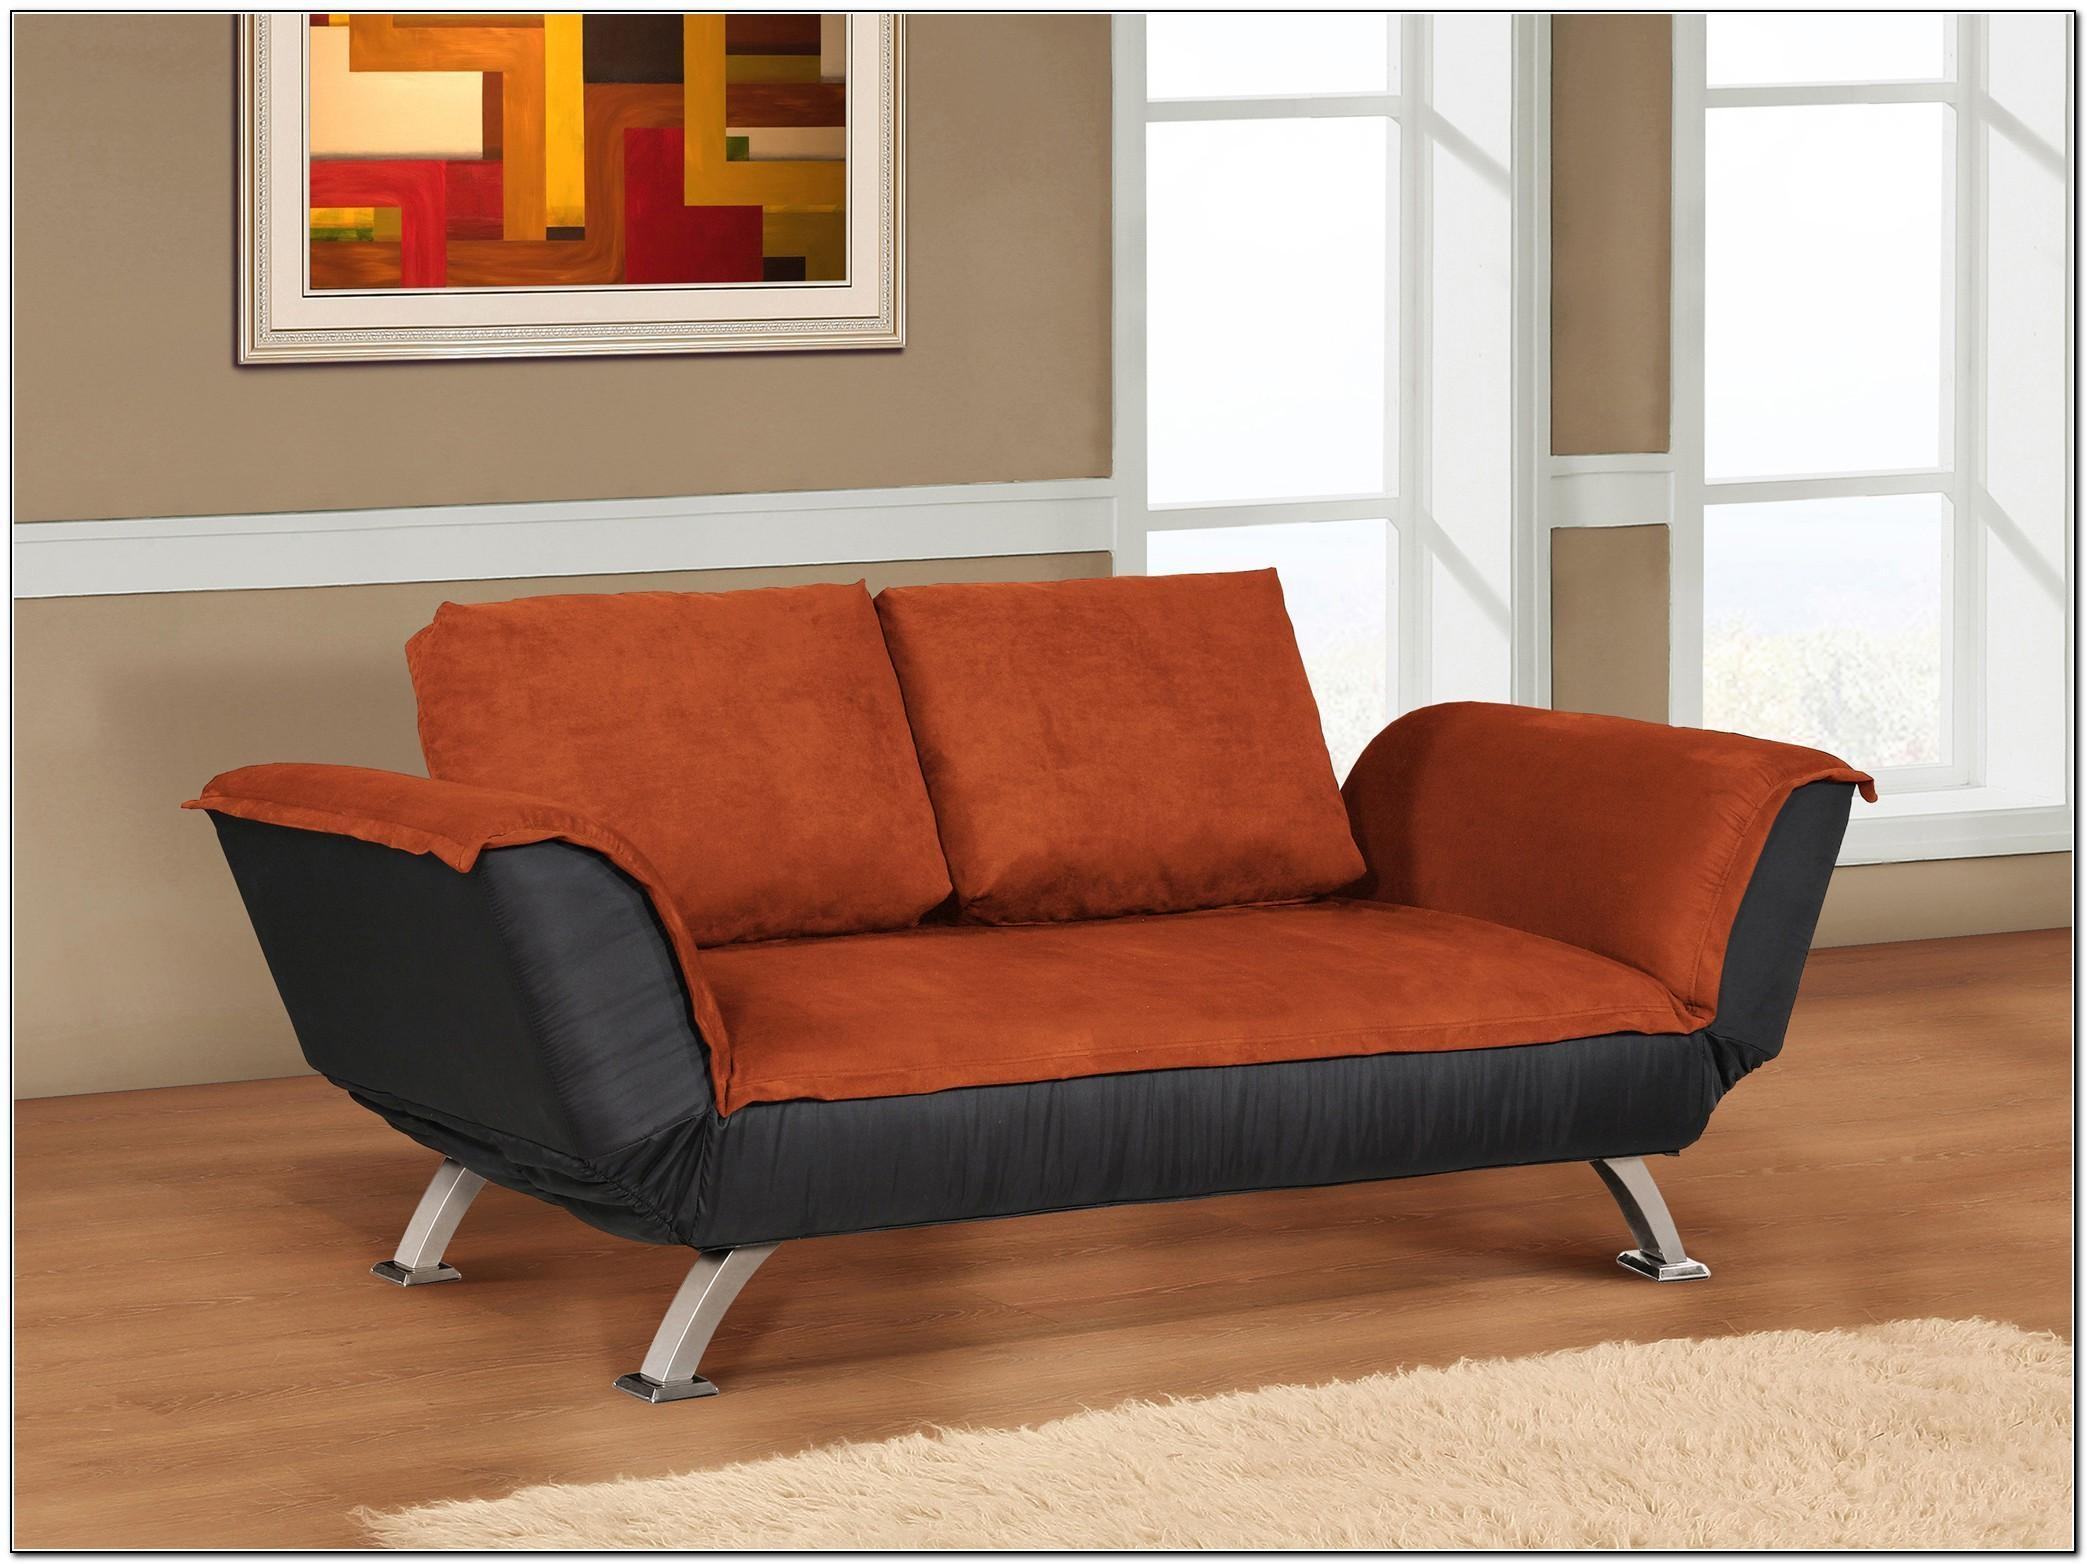 Unique Castro Convertible Sofa Bed 57 For Your Sofas And Couches throughout Castro Convertible Sofa Beds